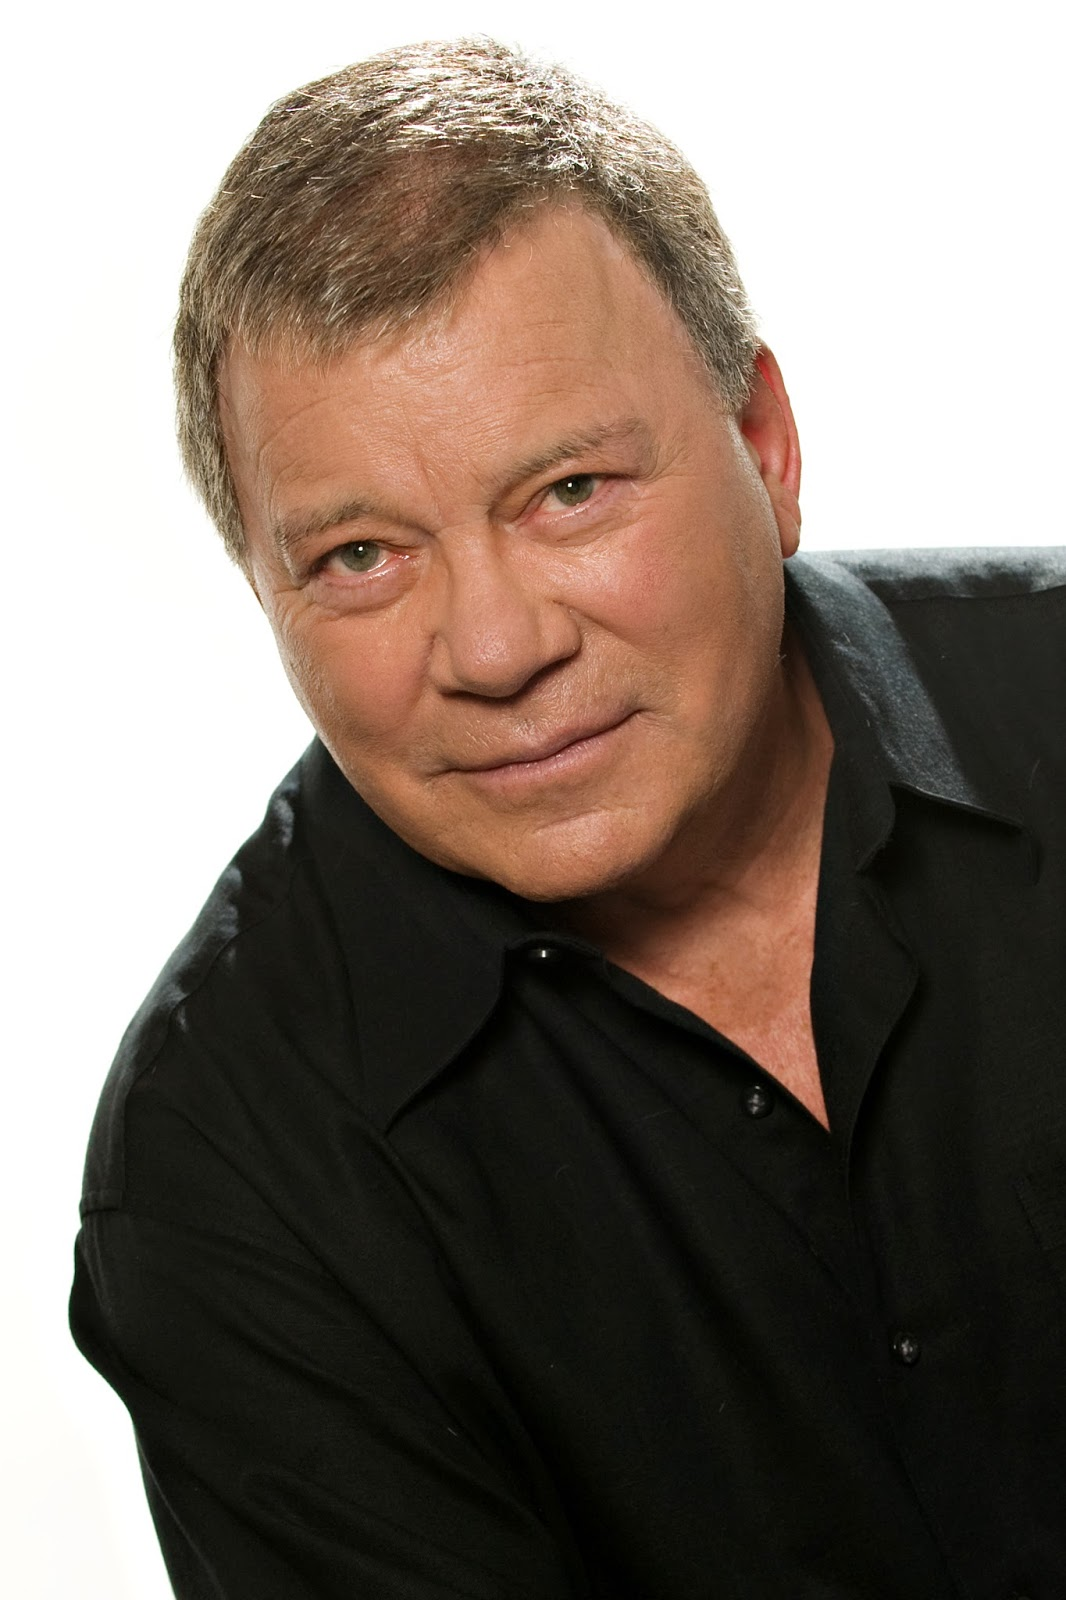 Discussion on this topic: Lila Finn, william-shatner/